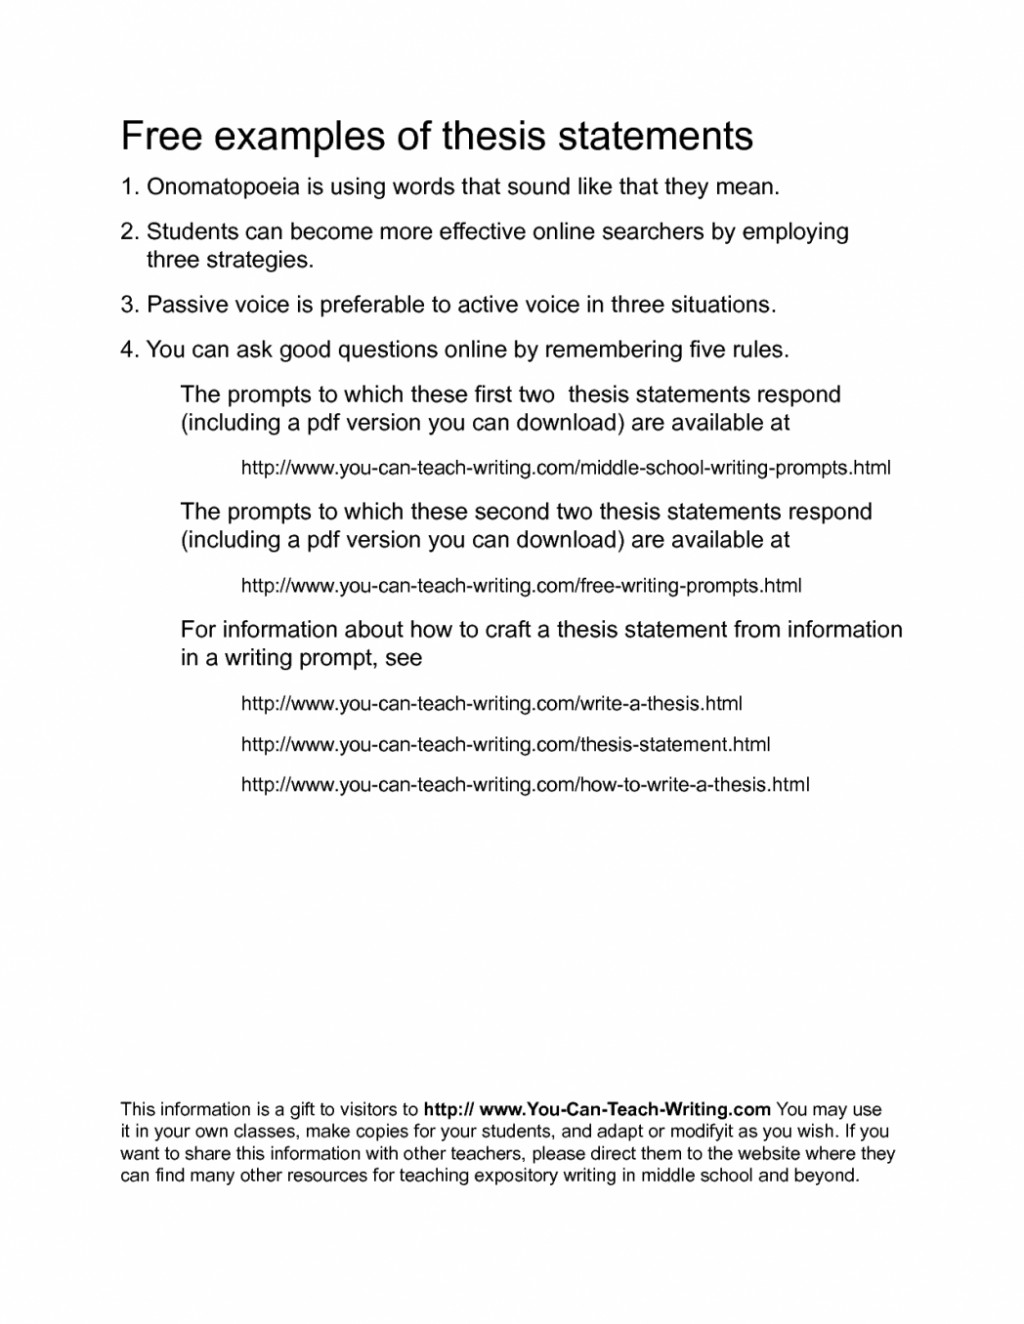 007 Persuasiveay Thesis Good Topics For Middle School About Purpose Of Statement Template Wwe Speech Uniforms Issues Education Rules Uniform Argumentative High 1048x1356 Exceptional Persuasive Essay Examples Worksheet Large